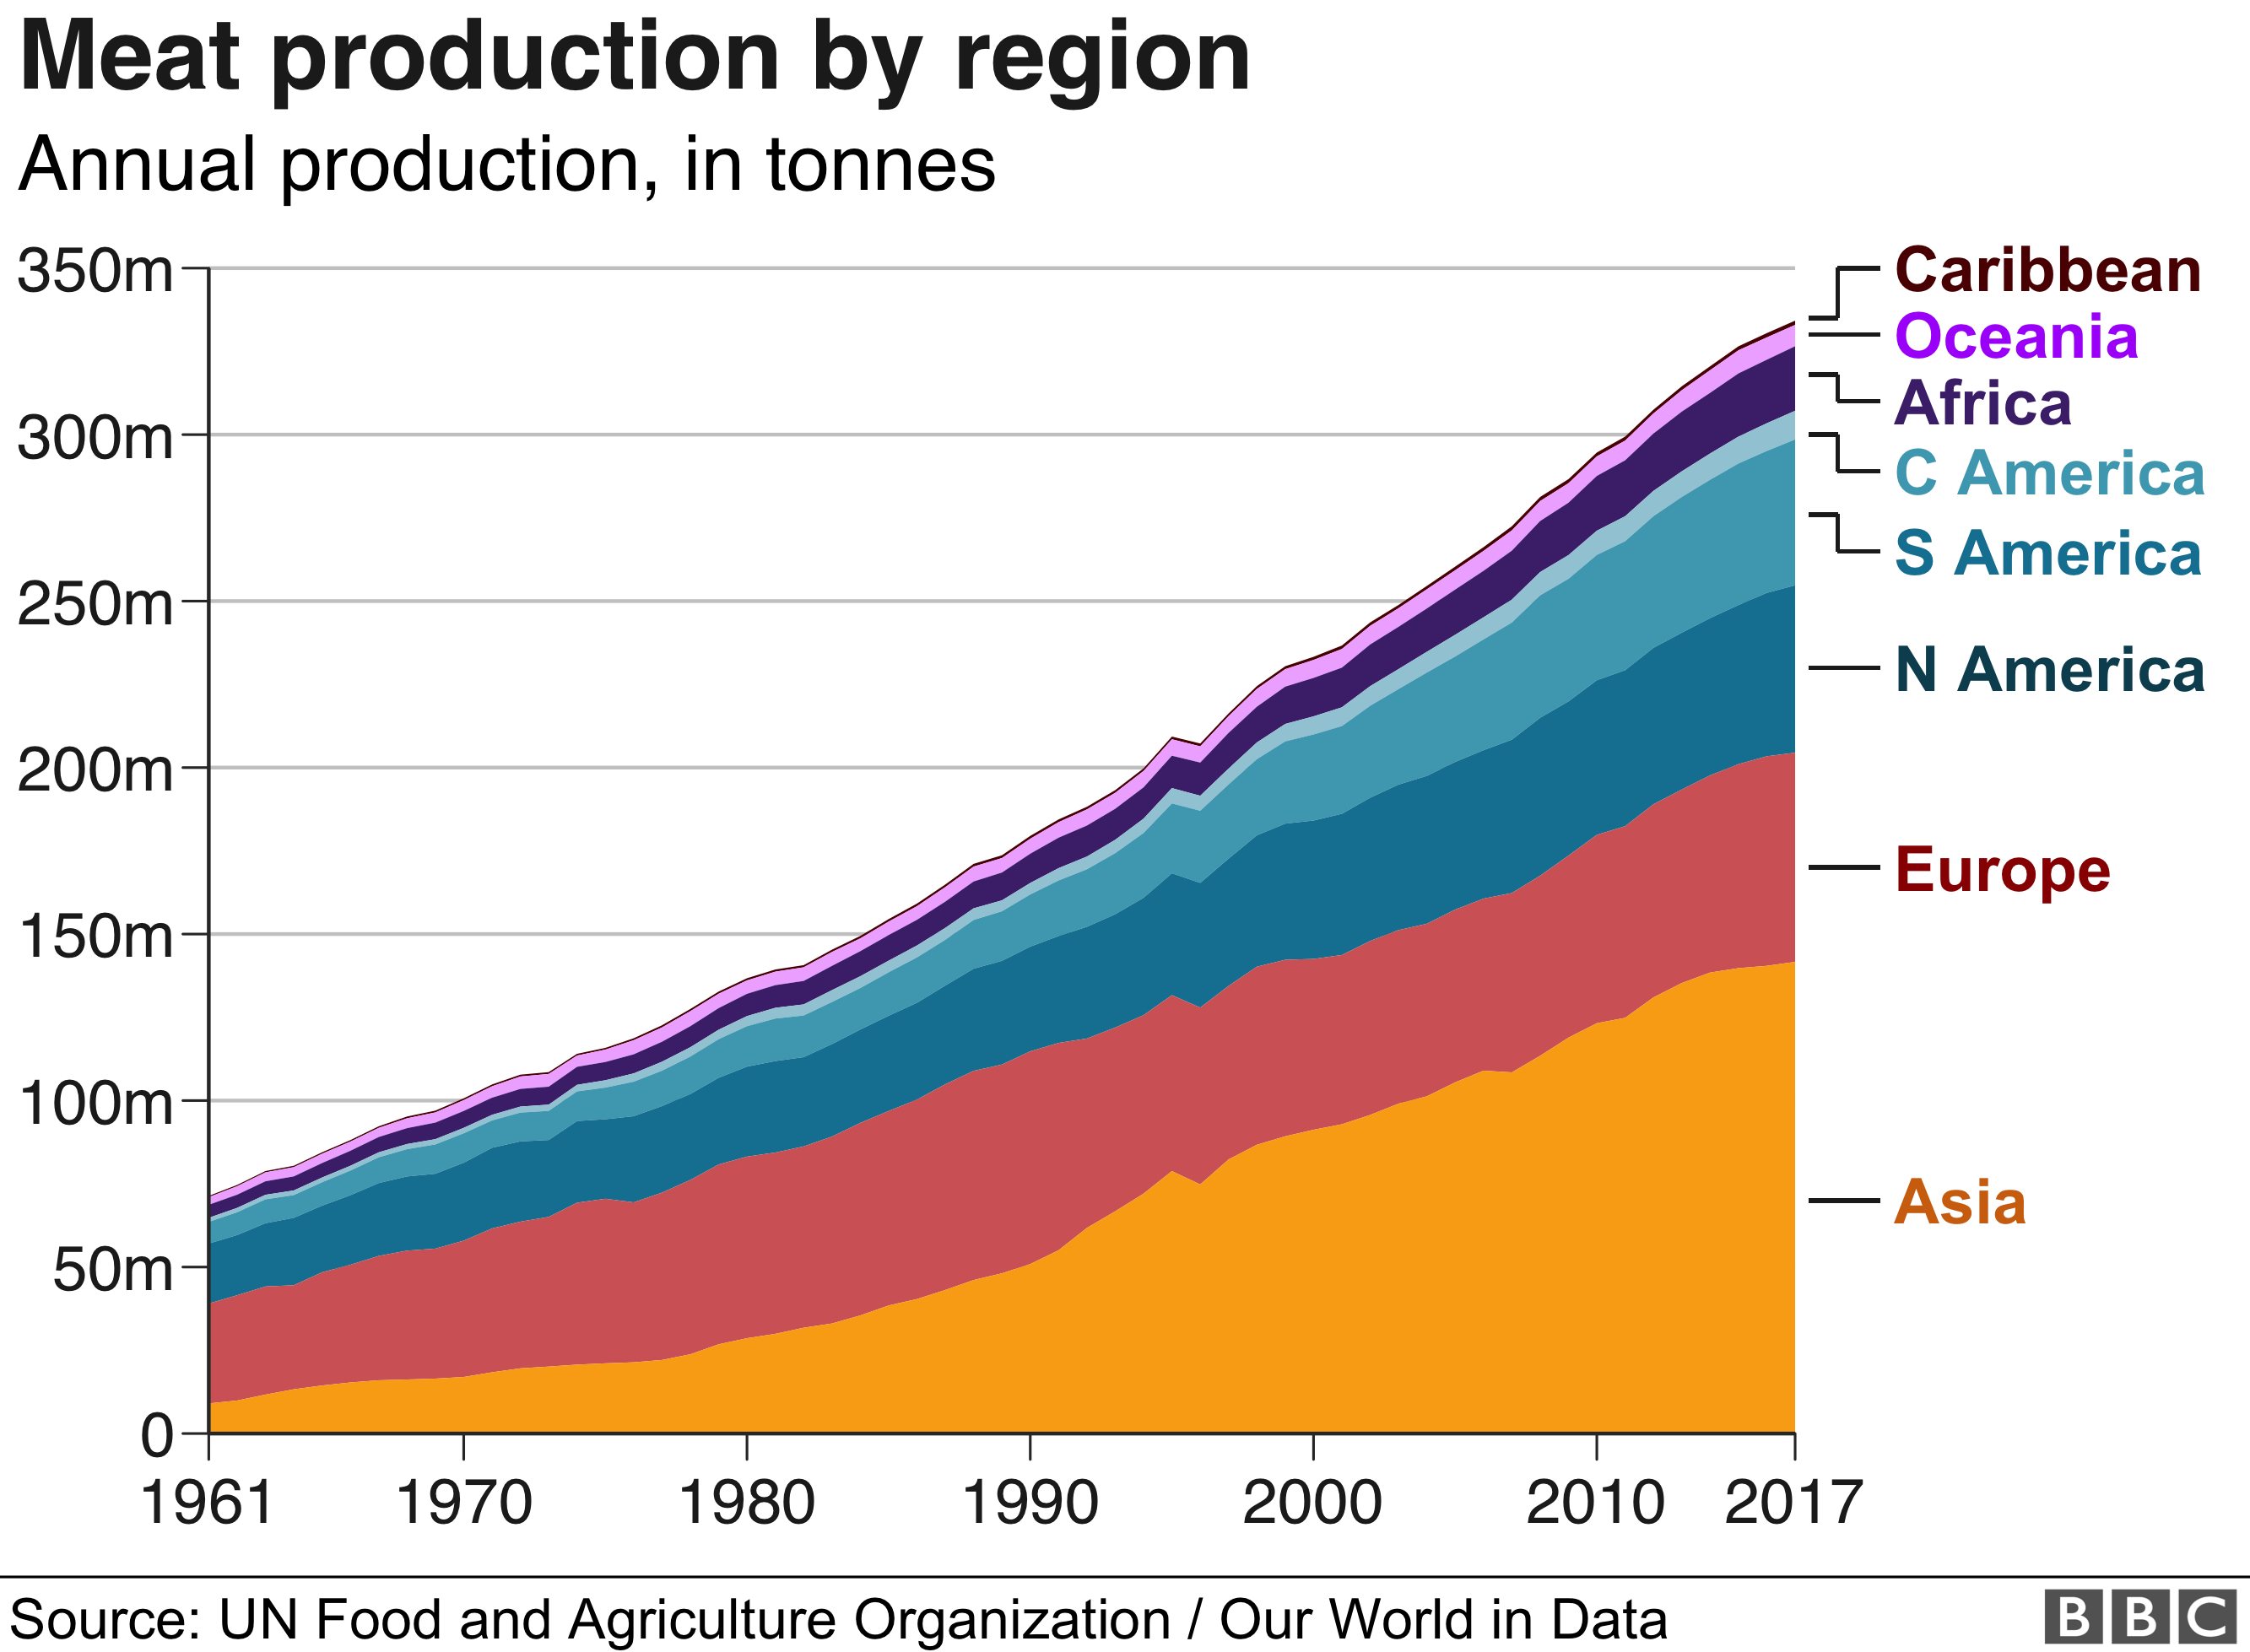 Meat production by region